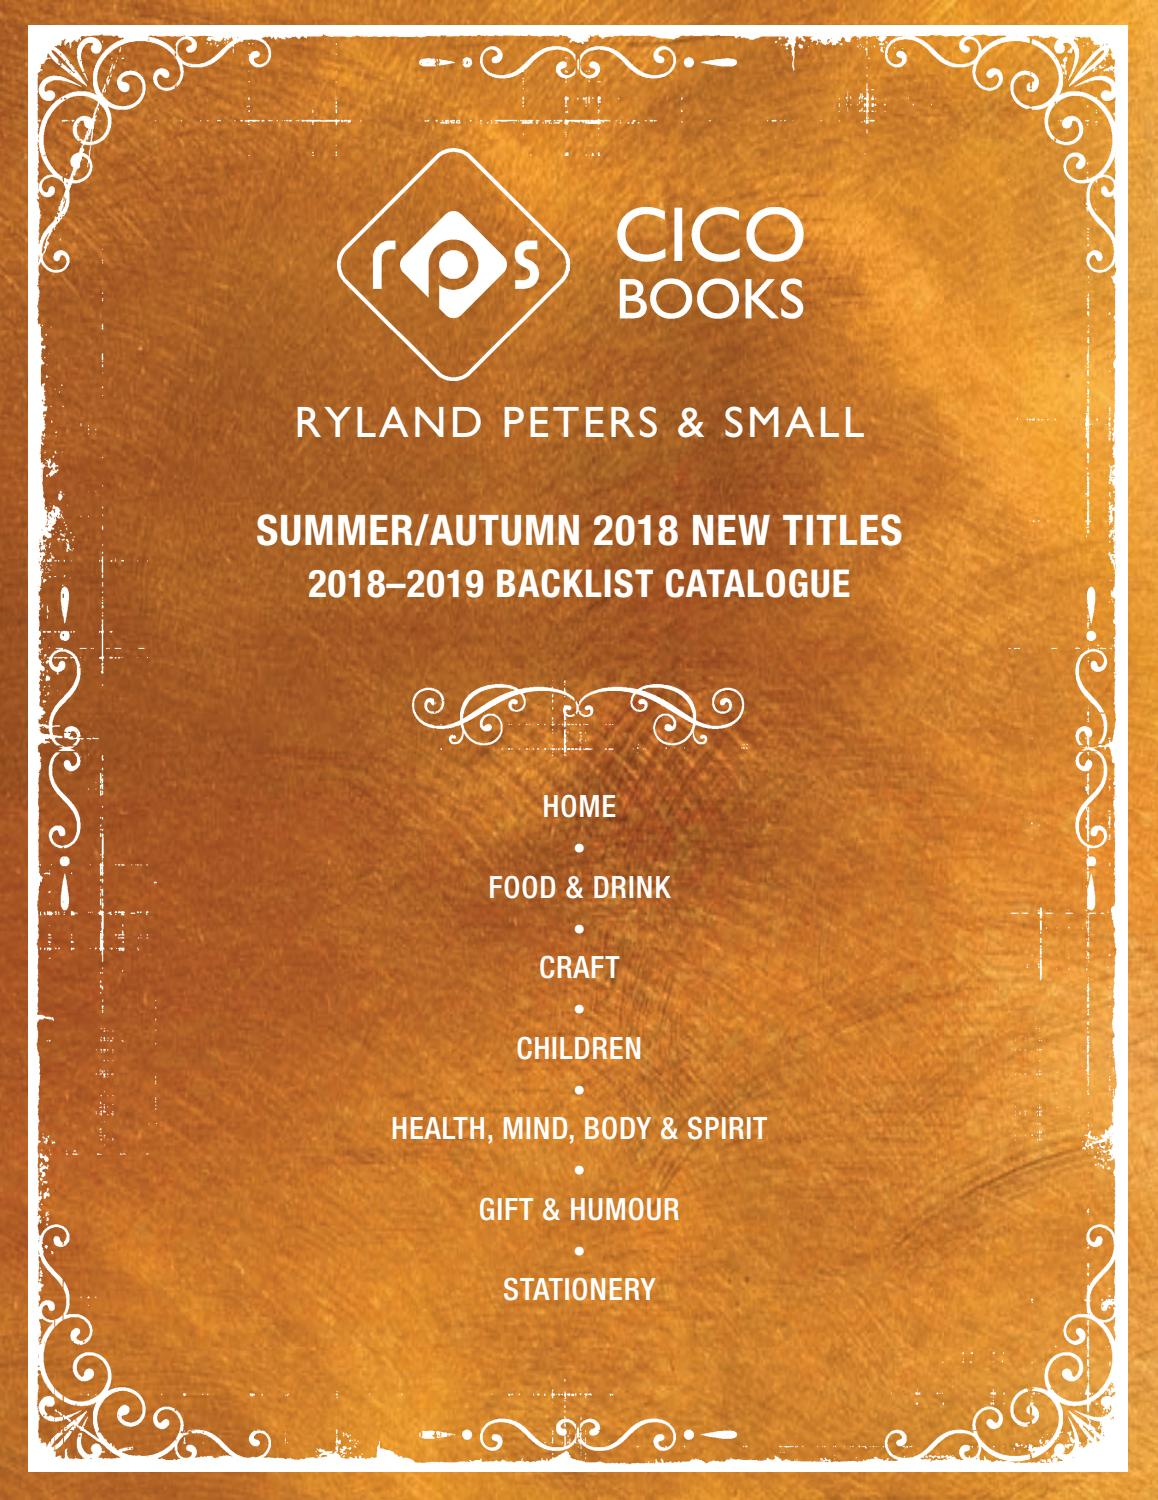 Autumn Catalogue 2018 By Ryland Peters & Small And Cico